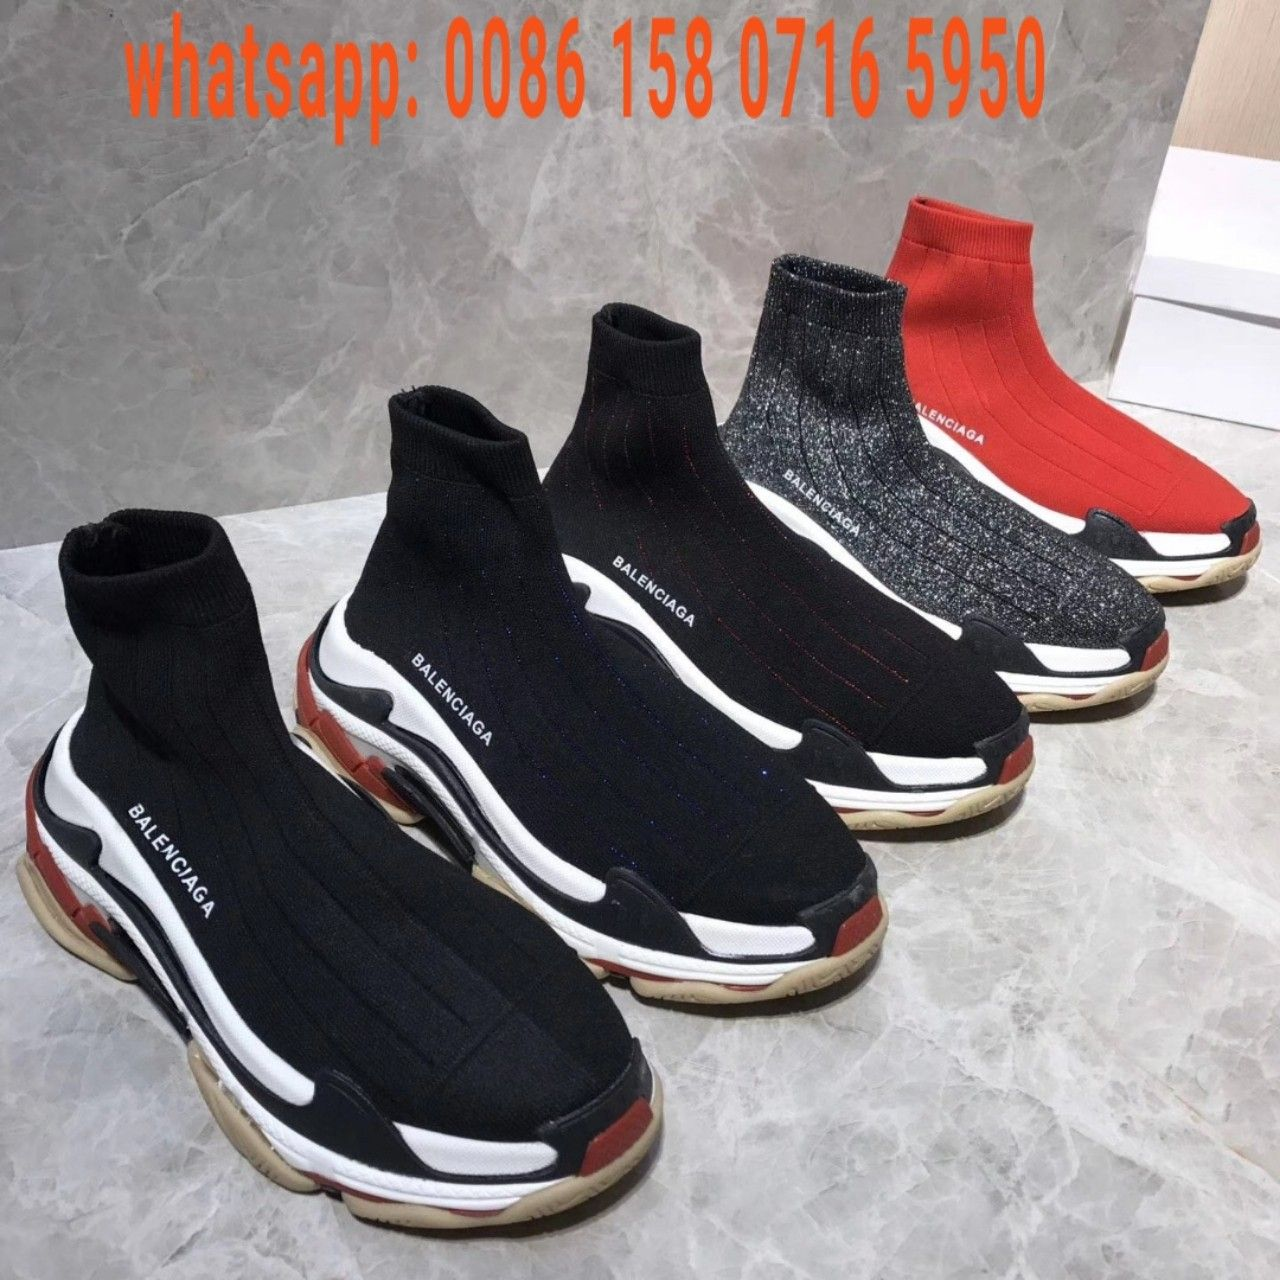 When With Balenciaga To Contact please You Sneakers Buy Want Me xwOwXv